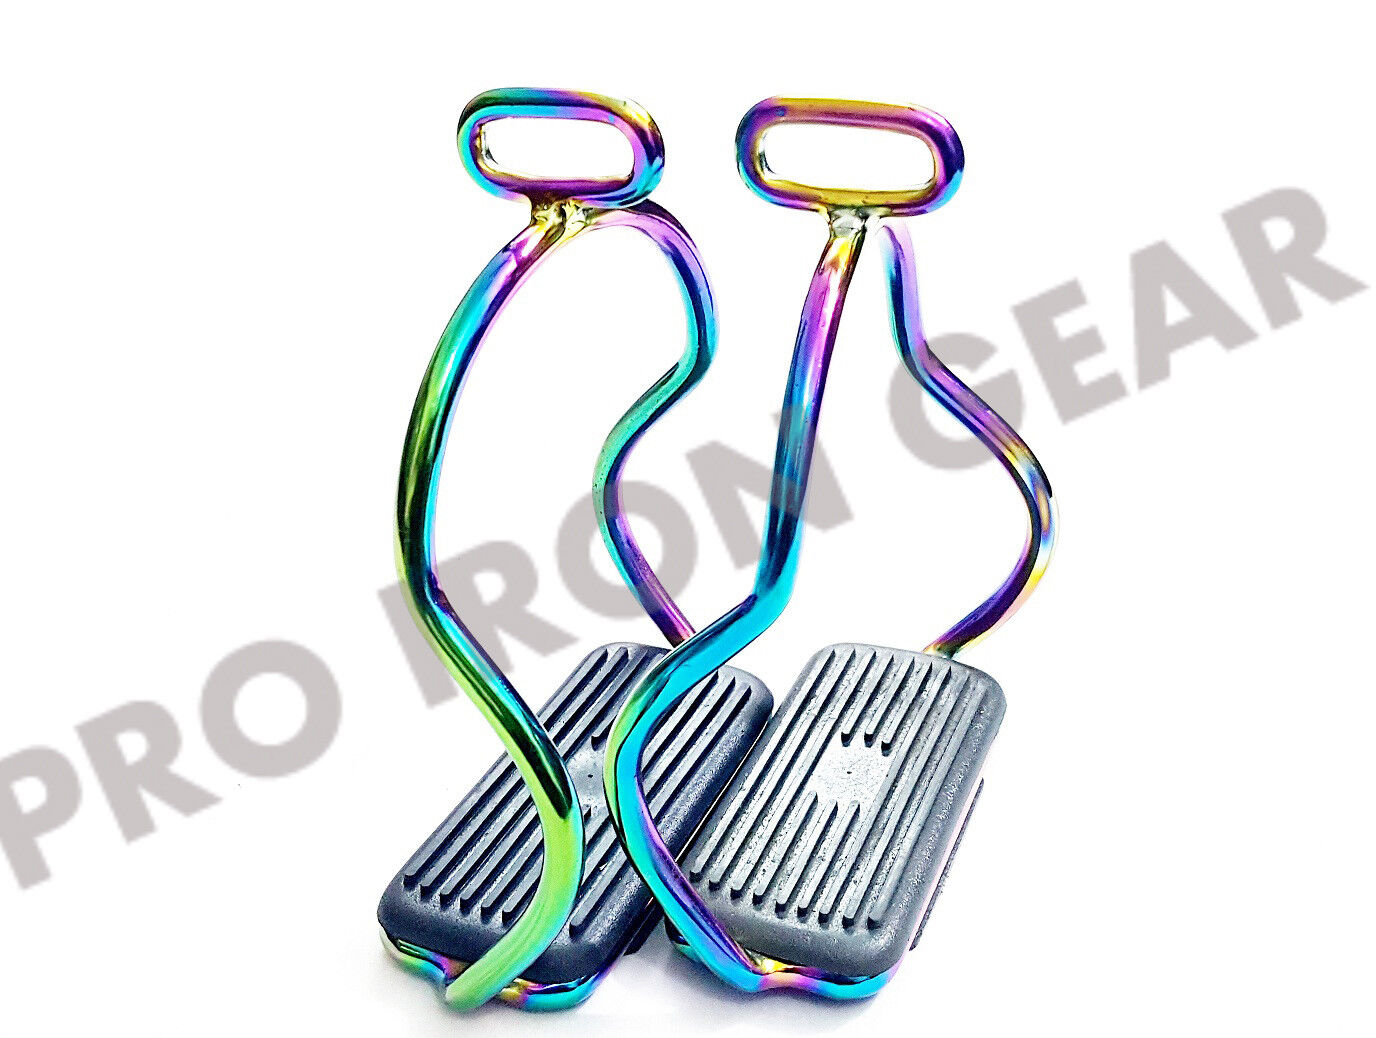 RAINBOW ALUMINUM DOUBLE BENT STIRRUPS HORSE RIDING STEEL STAINLESS STEEL RIDING 72eb86